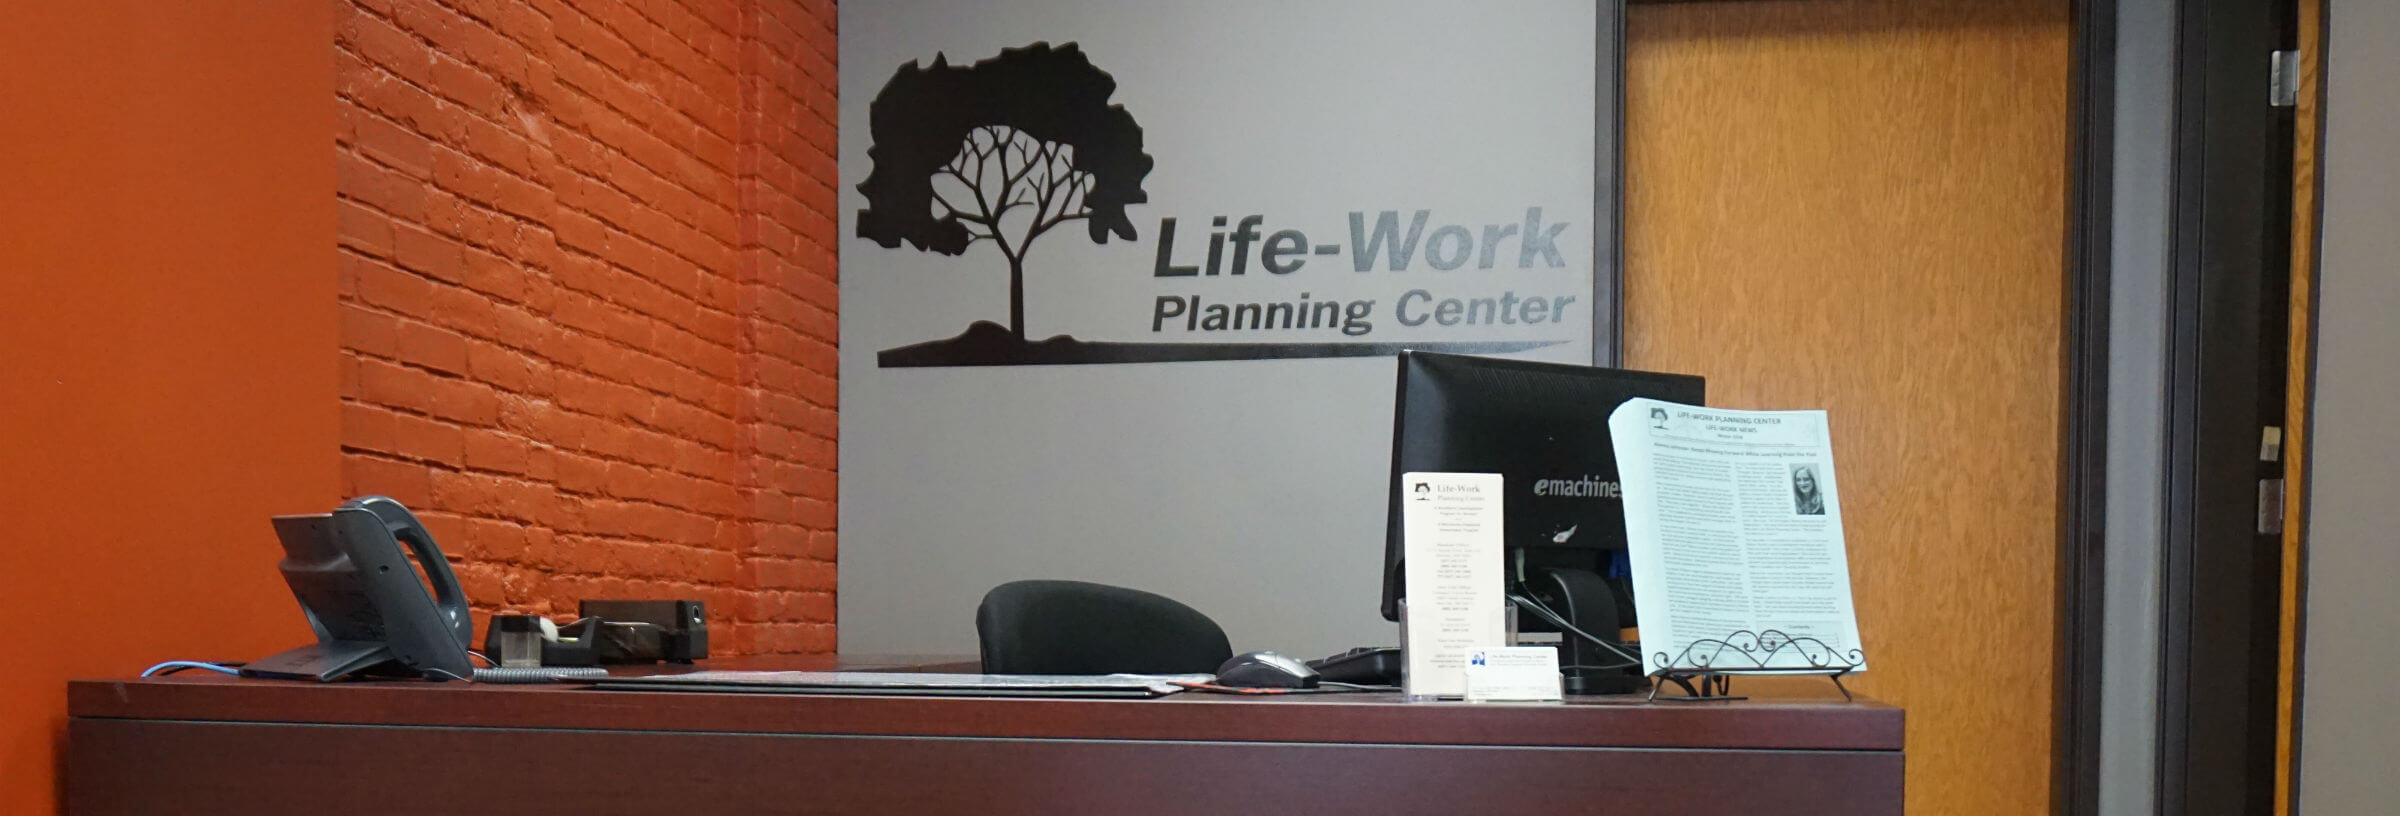 Life-Work Planning Center – Mankato MN